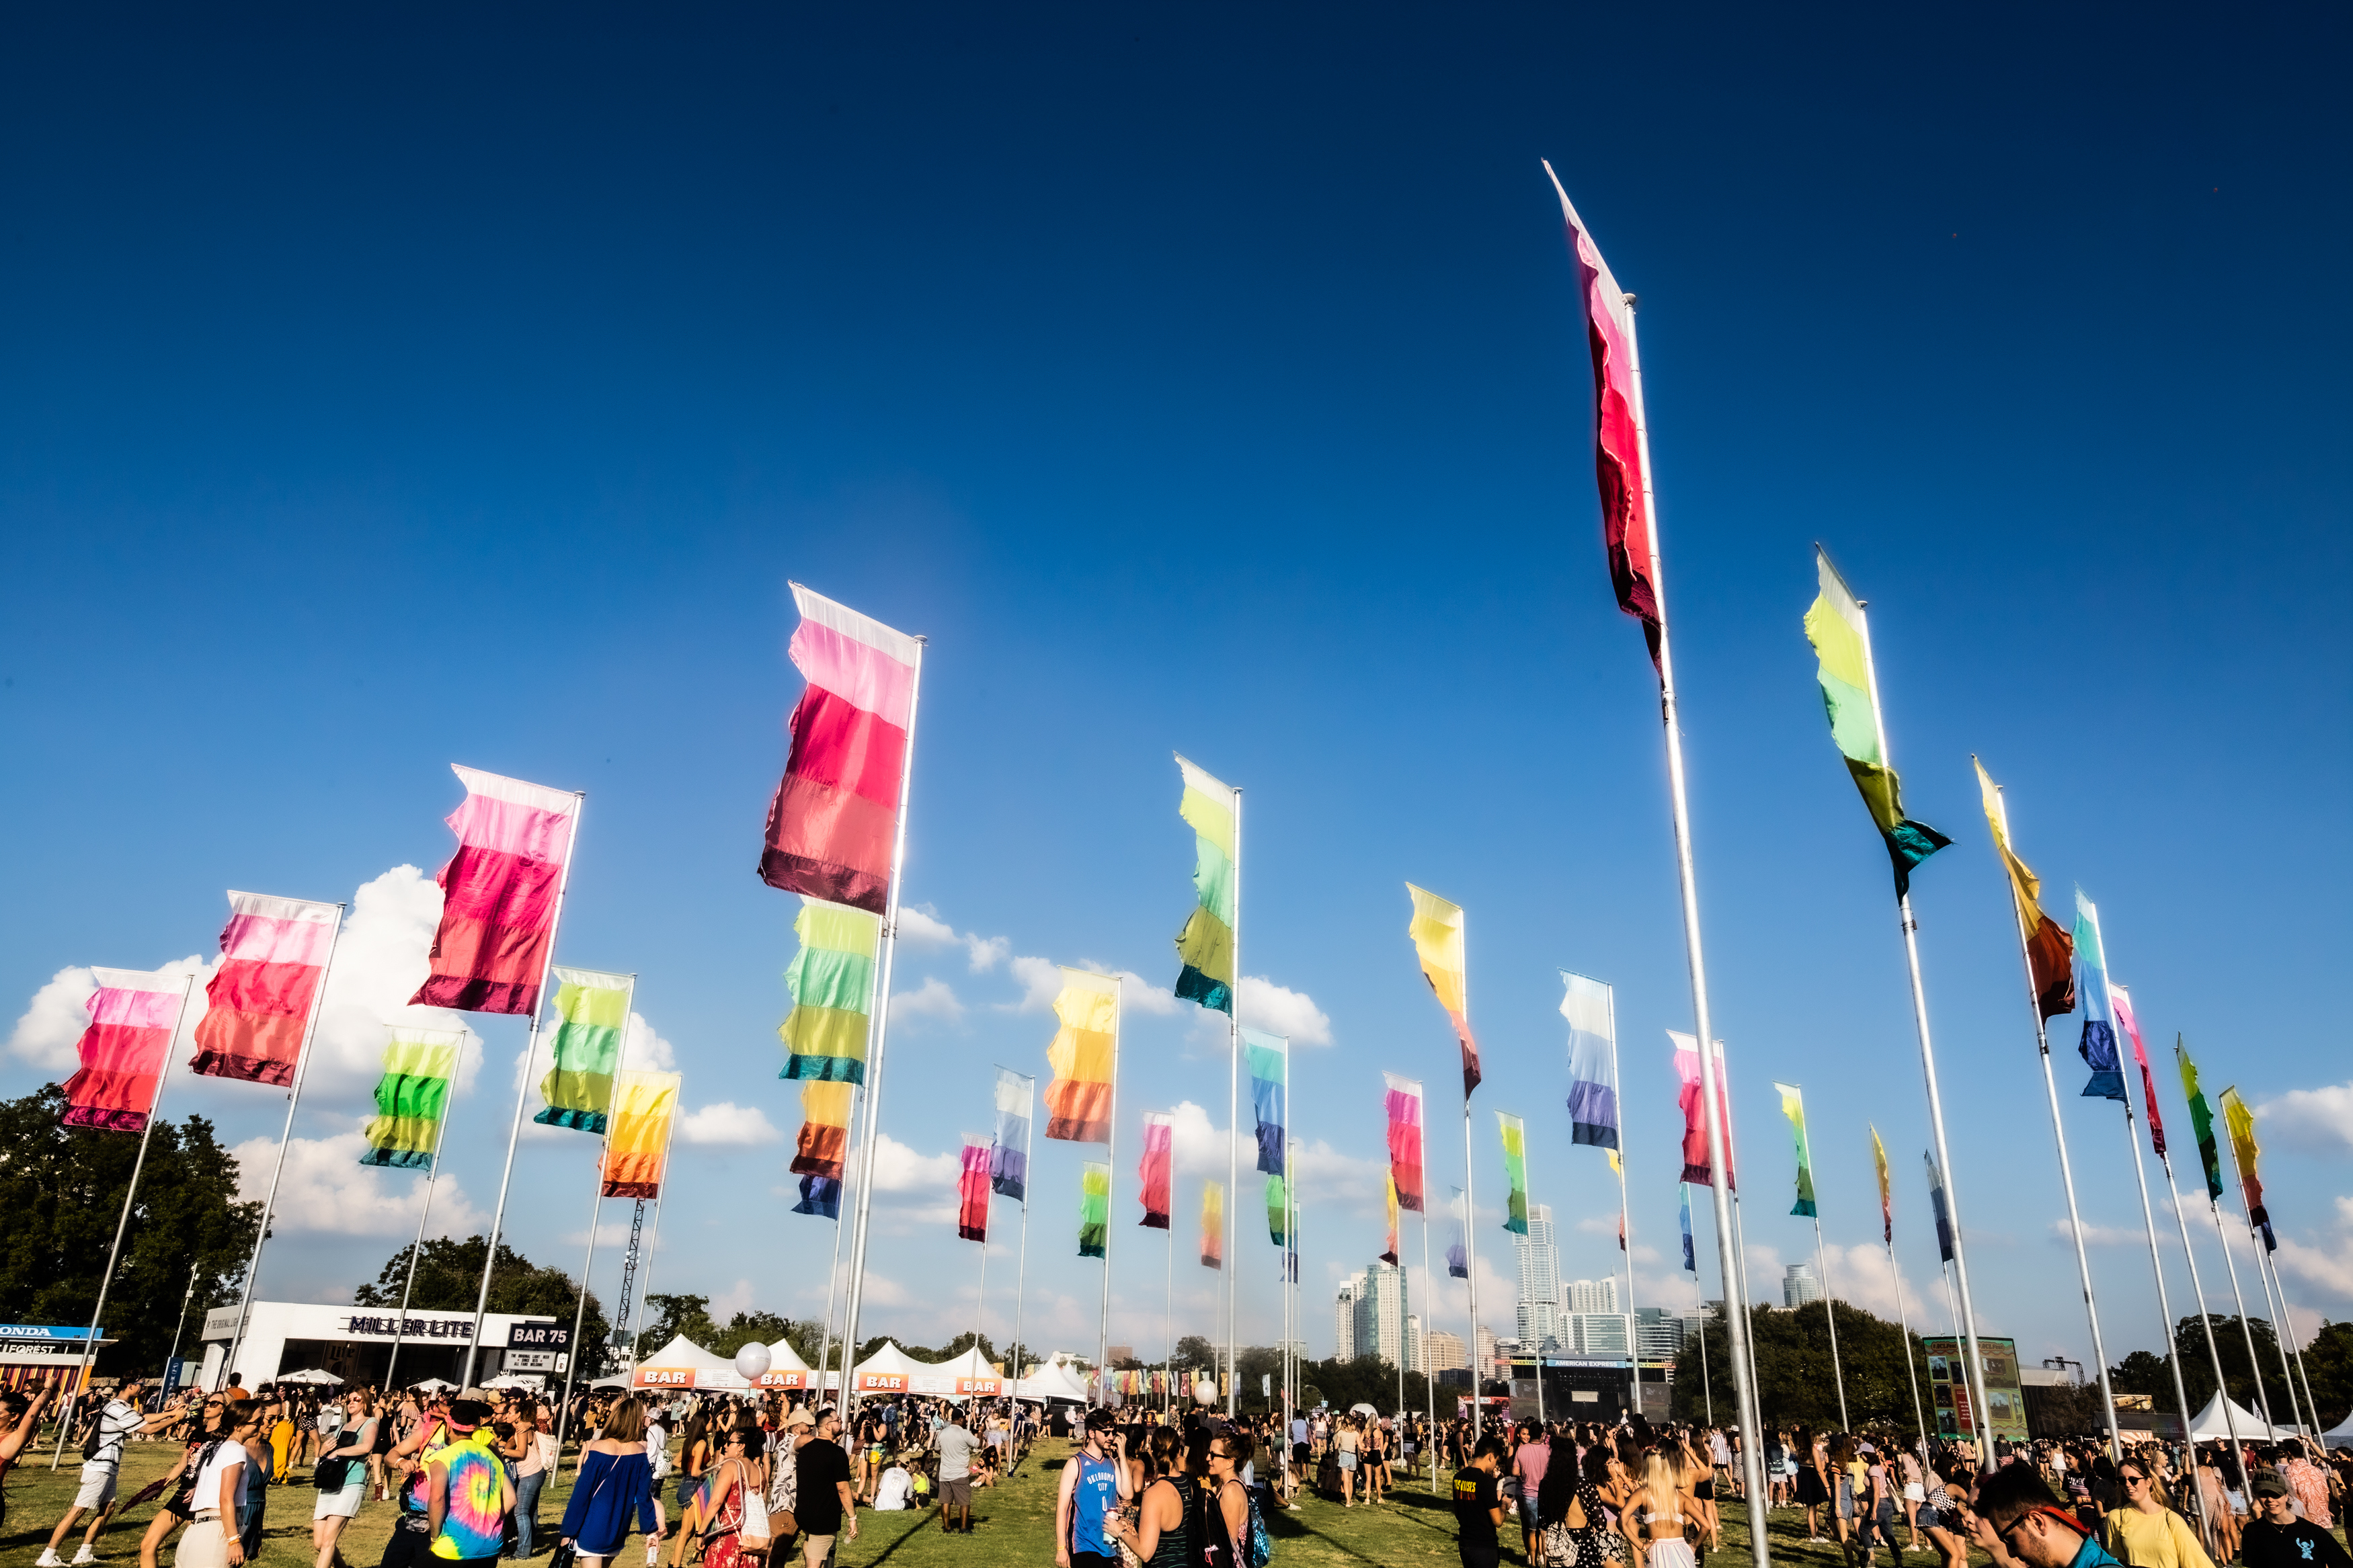 Tall colorful flags on masts blowing in the wind with a crowd of people on the ground